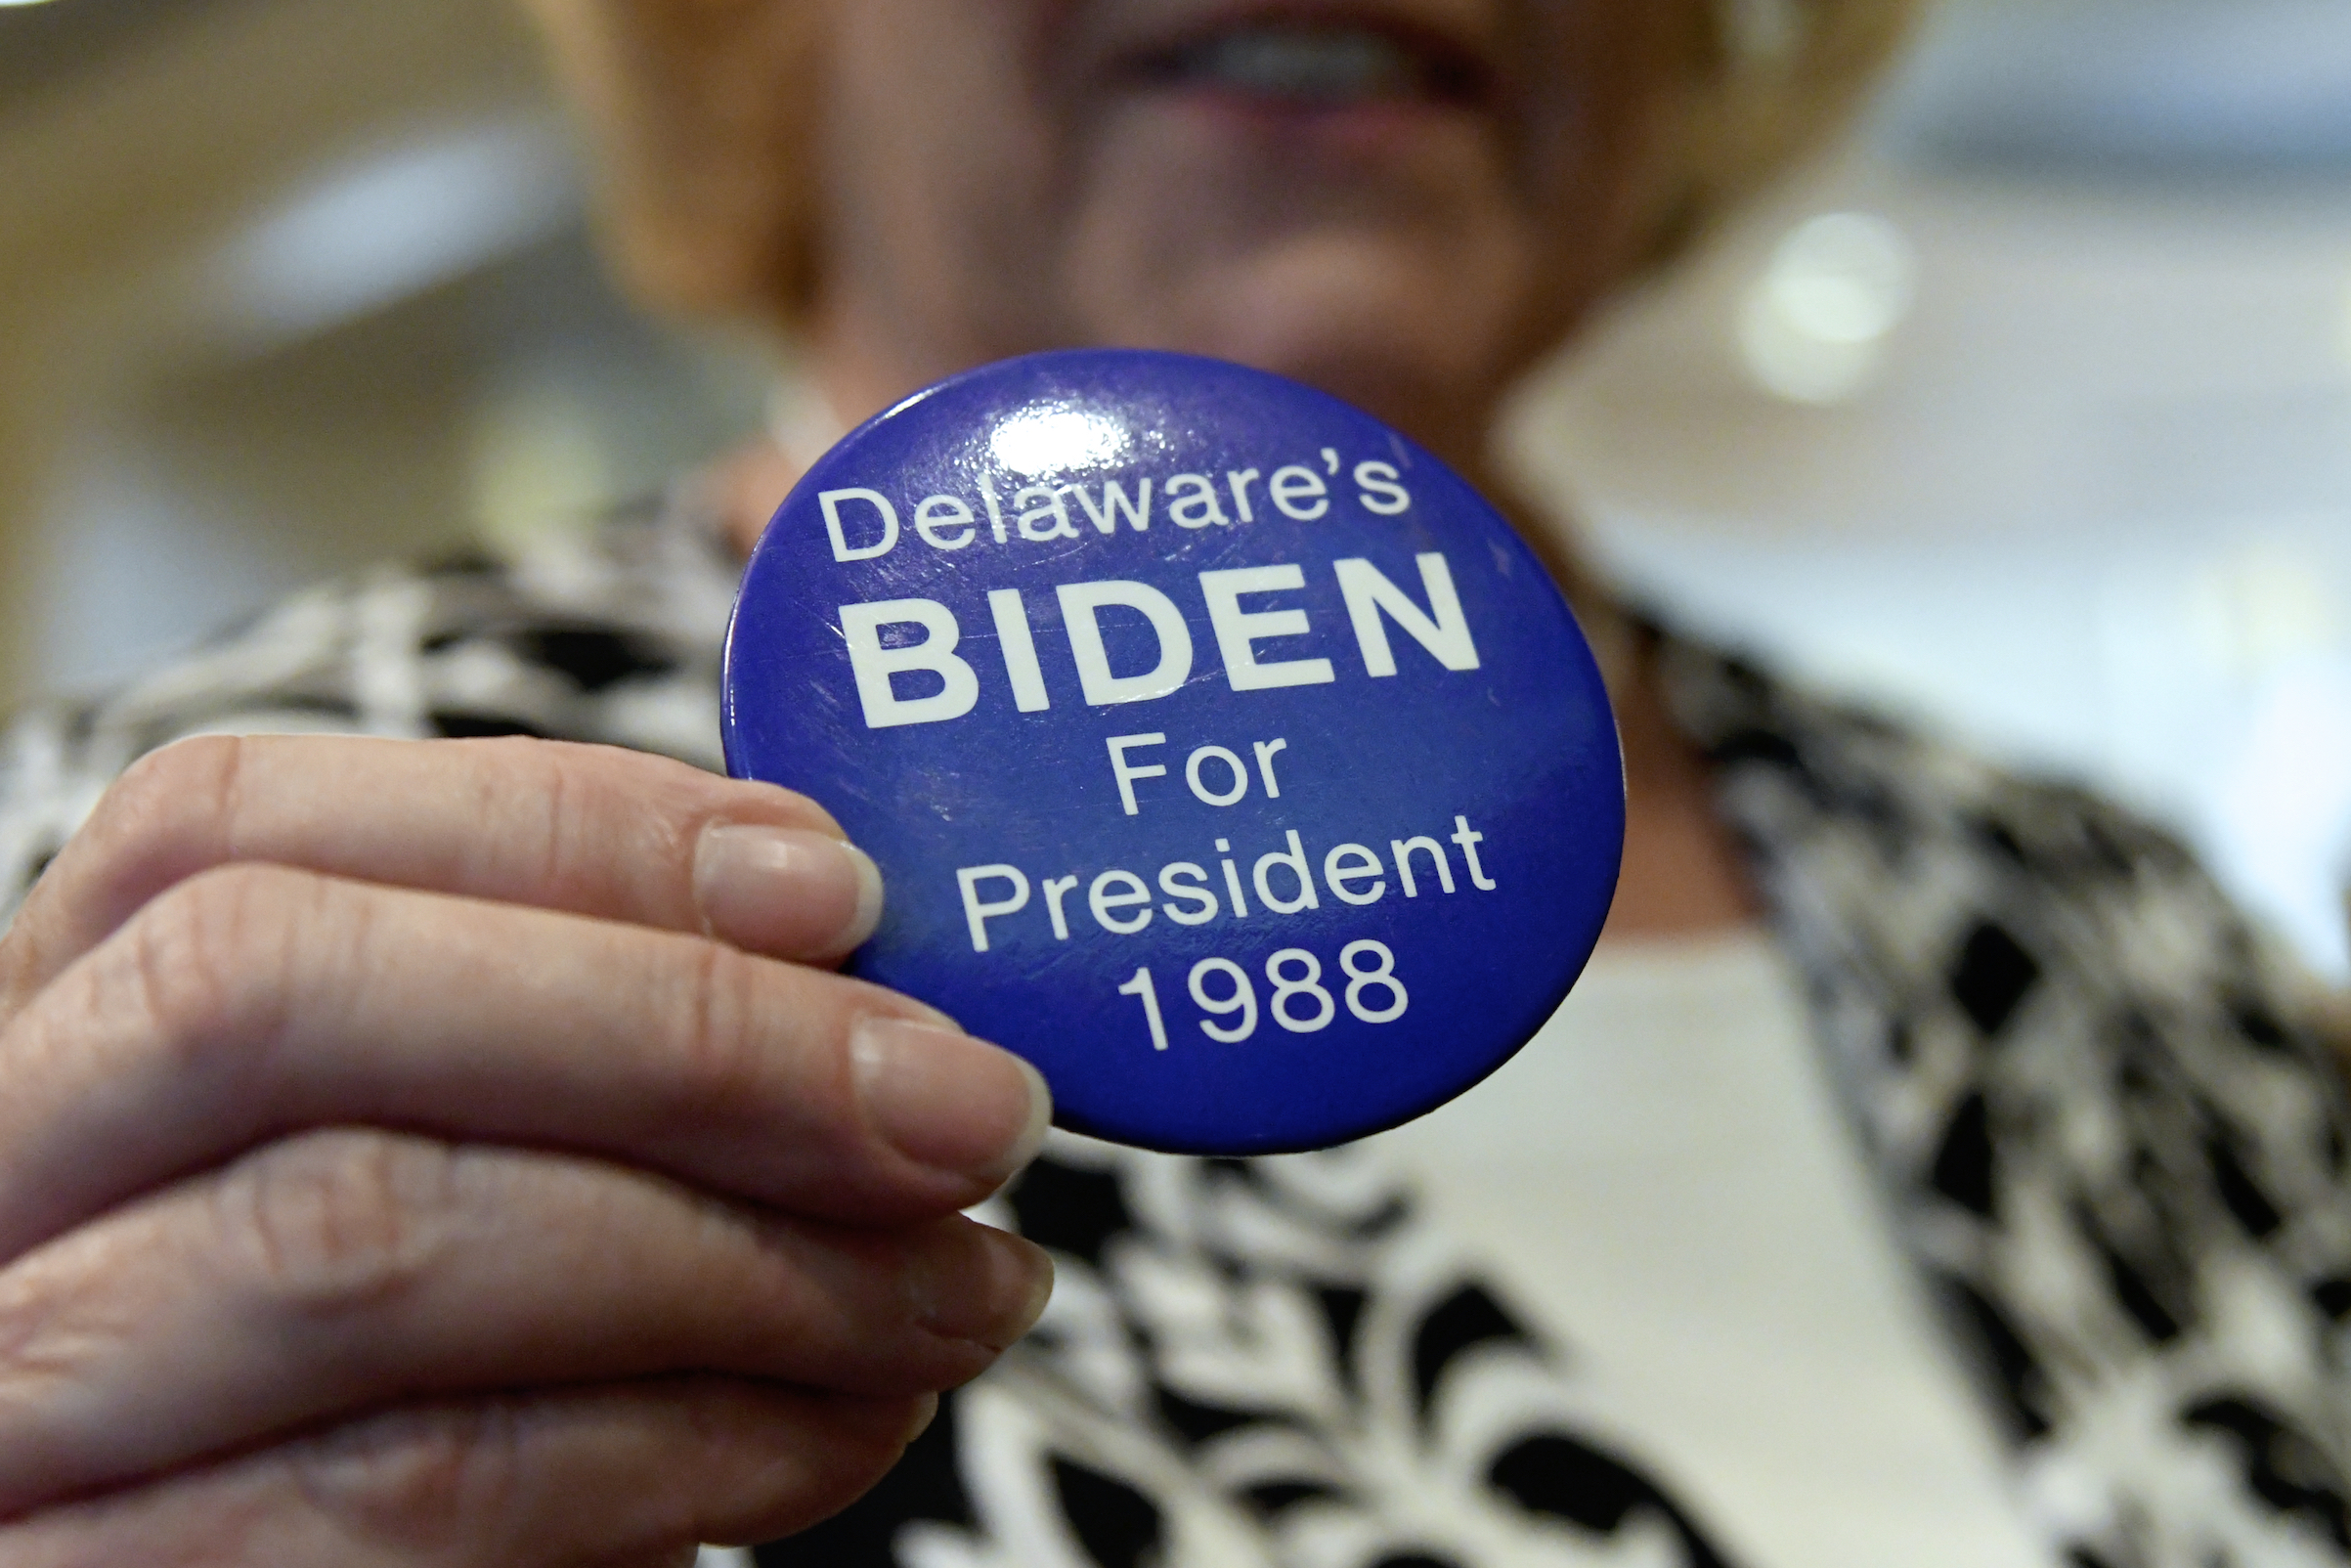 A supporter holds up a Biden for President button from 1988 in Dover, Del., on March 16, 2019.